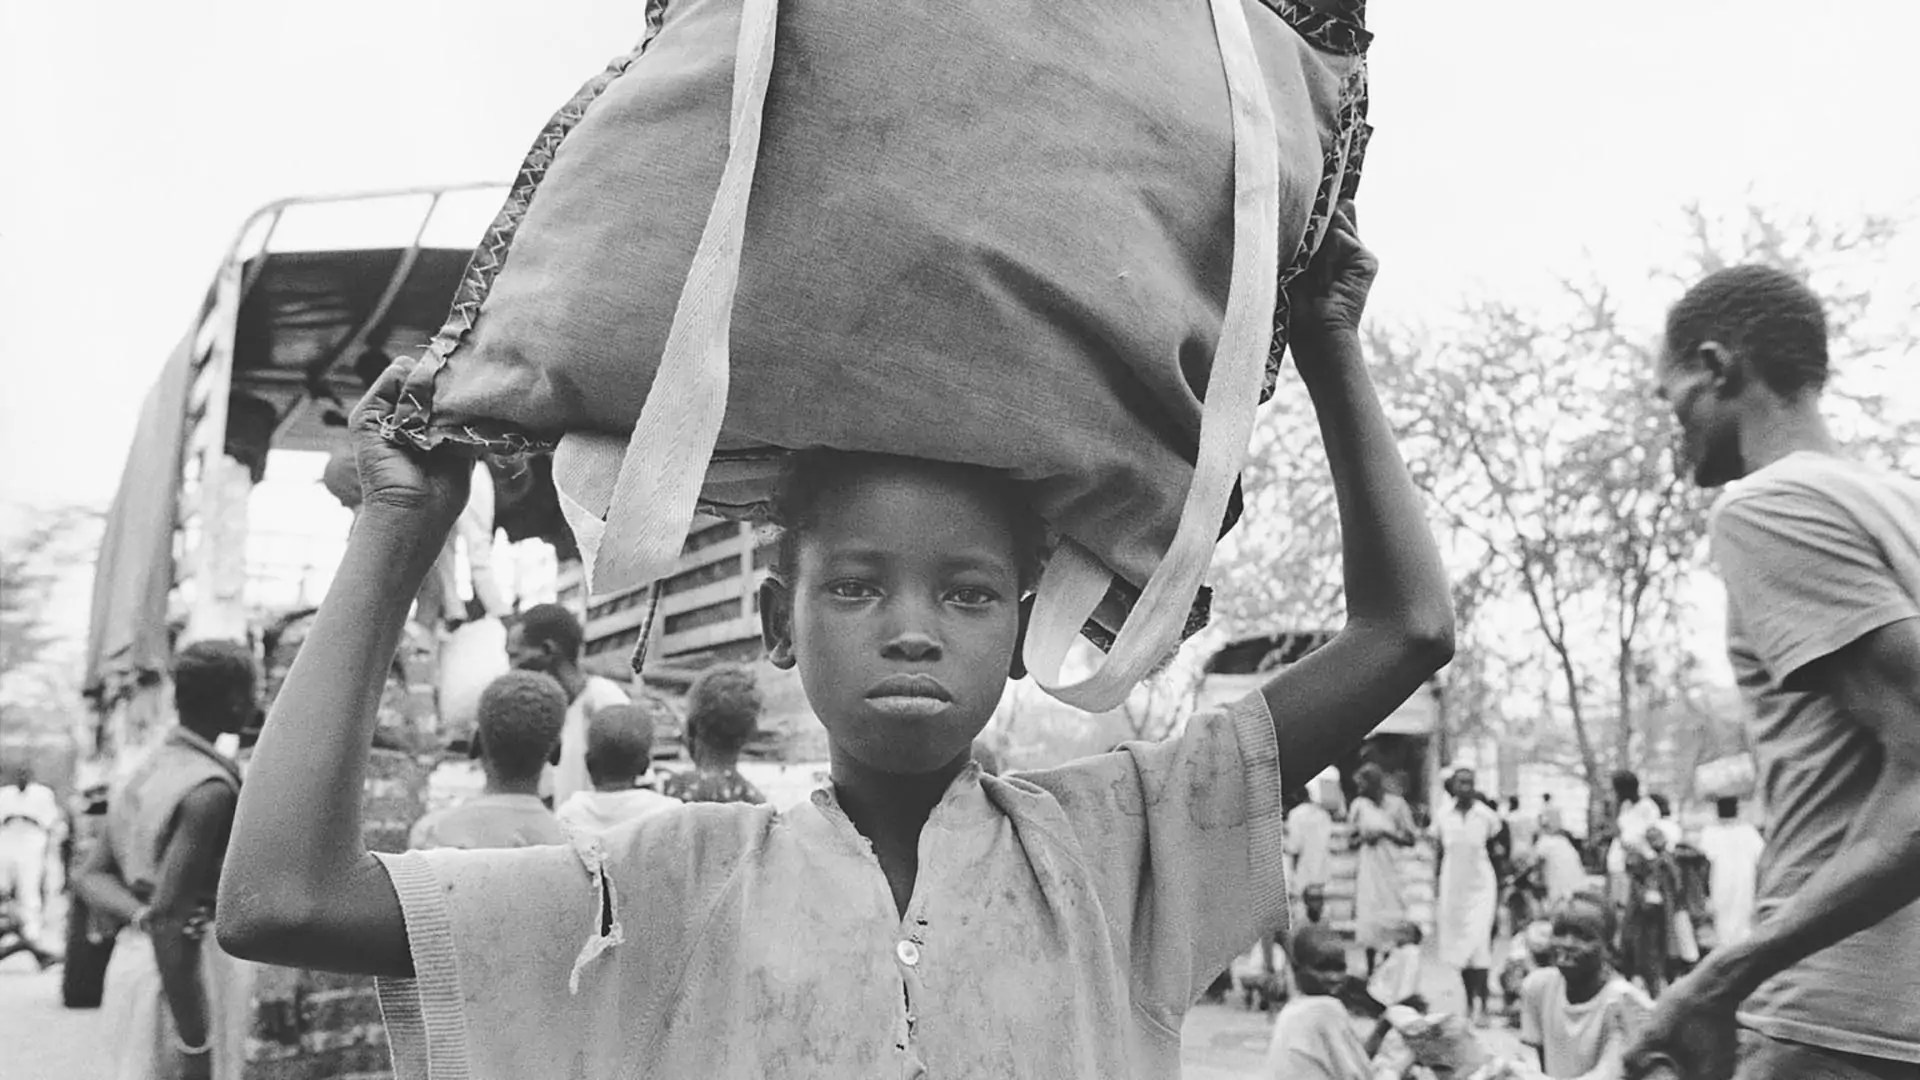 A young boy holds a package over his head while others surround a vehicle.